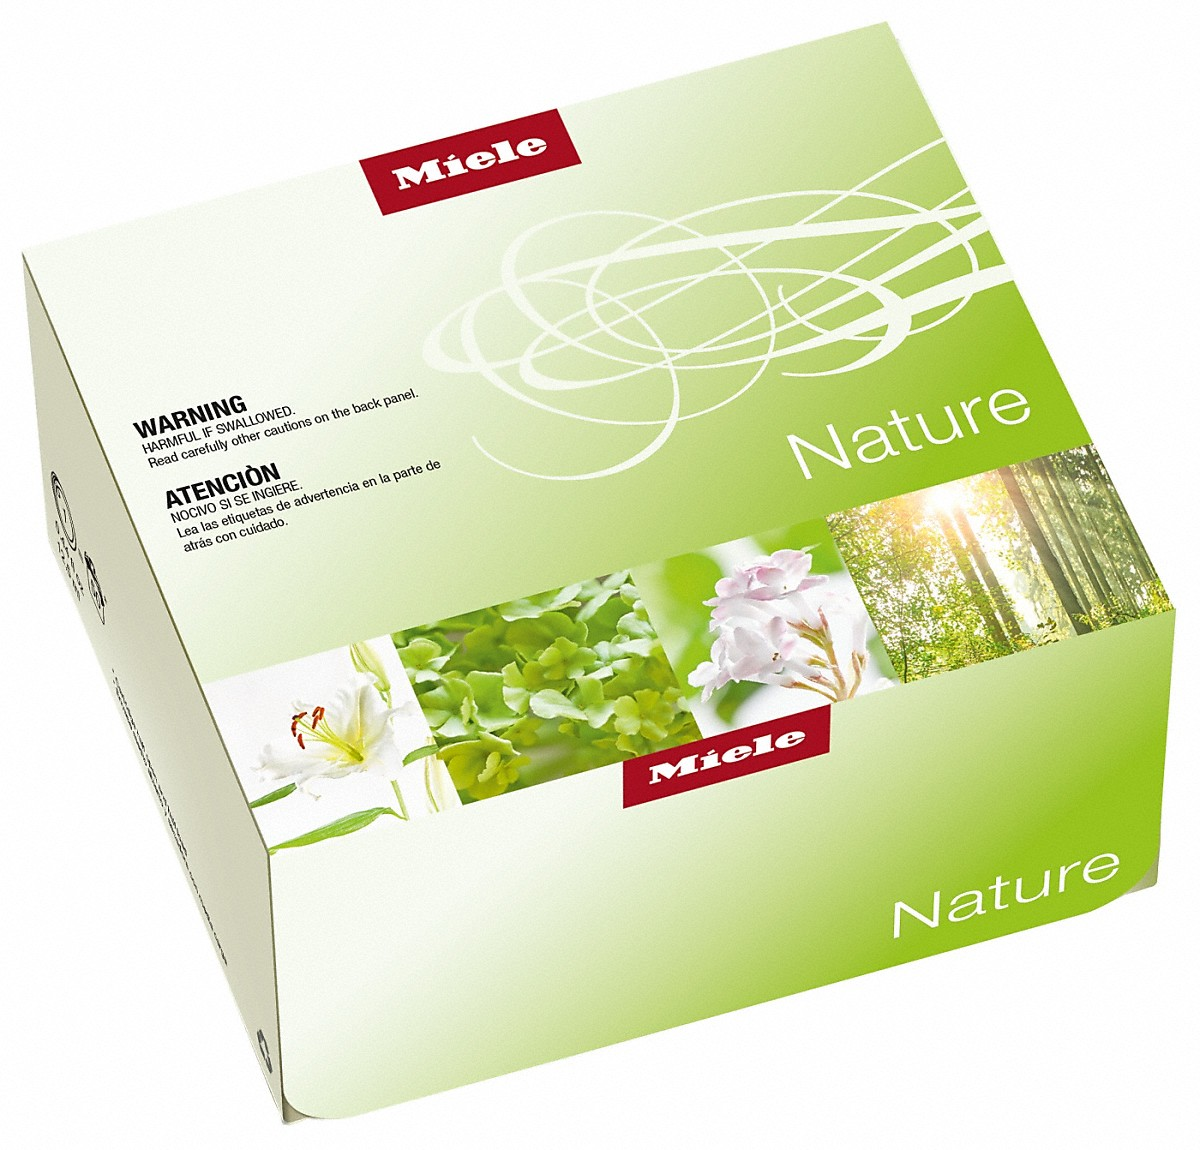 NATURE fragrance flacon 0.4 ozFor 50 dryer cycles.